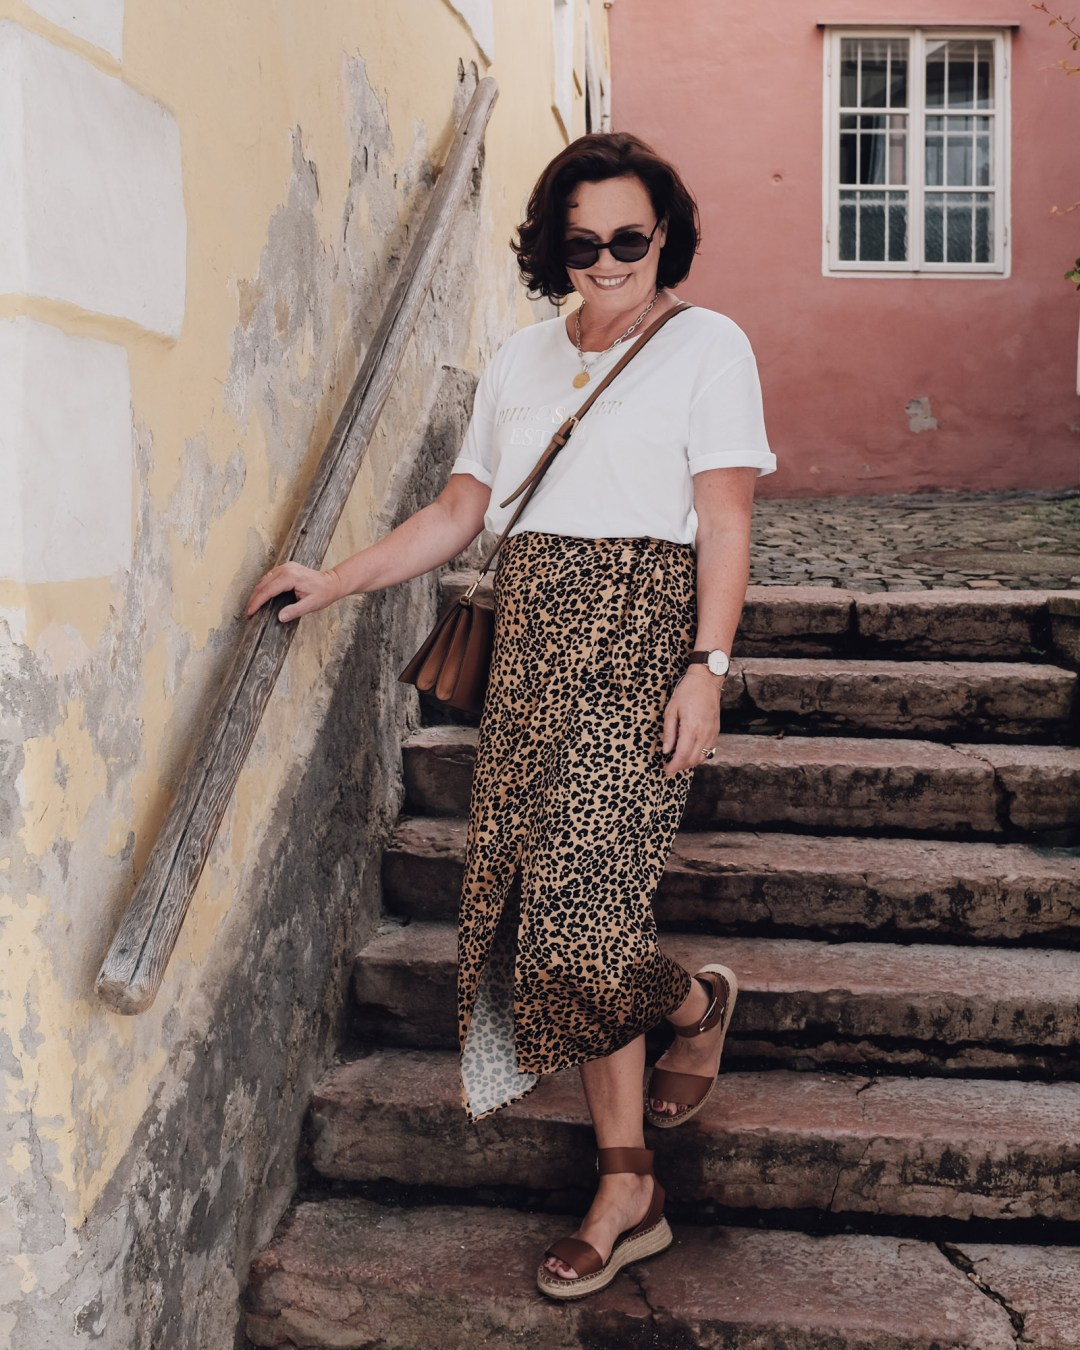 inastil, over50blogger, over50fashion, 50plusblogger, leoprint, leorock, sommermode, stilberatung, modeberatung, sommermode, wickelrock, fashioninspiration otherstories-14